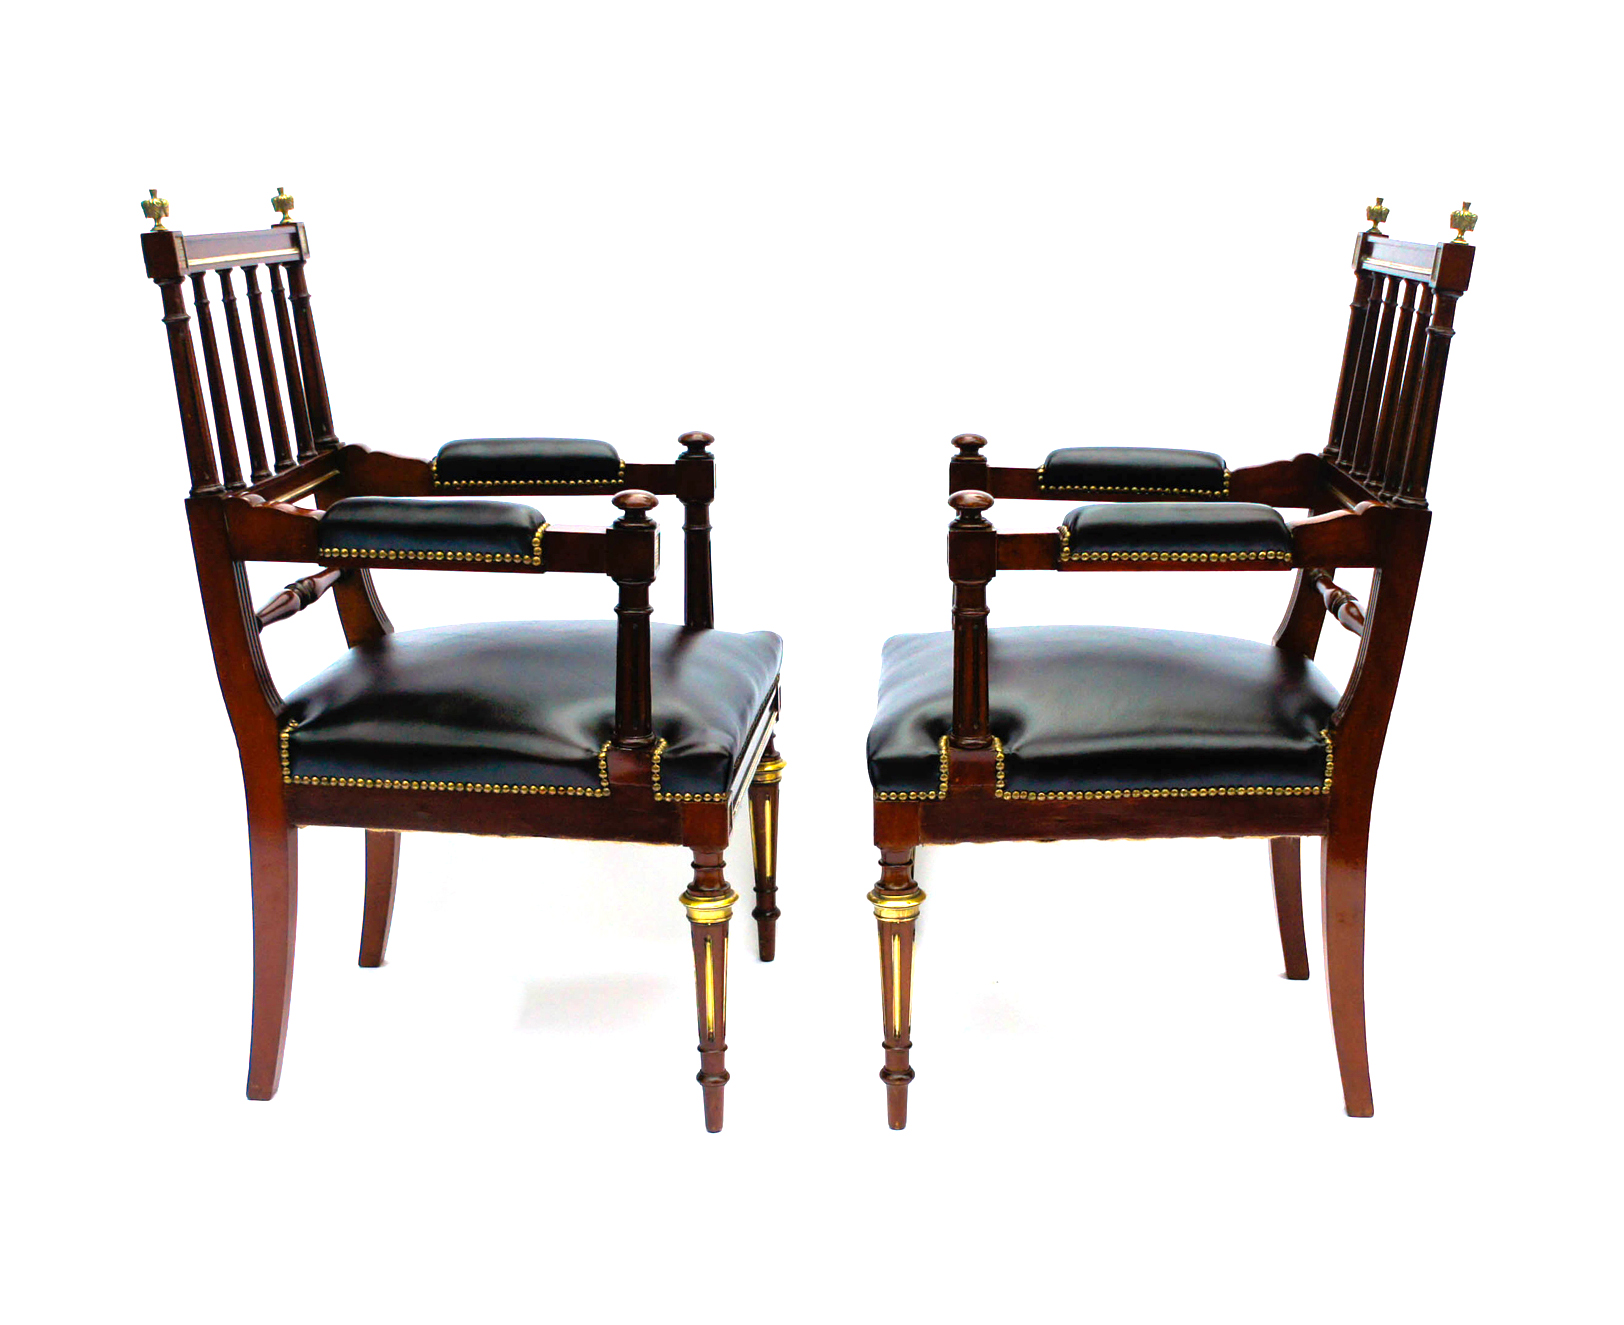 Awesome Antique French Empire Armchairs Or Desk Chairs Sn728 Ncnpc Chair Design For Home Ncnpcorg